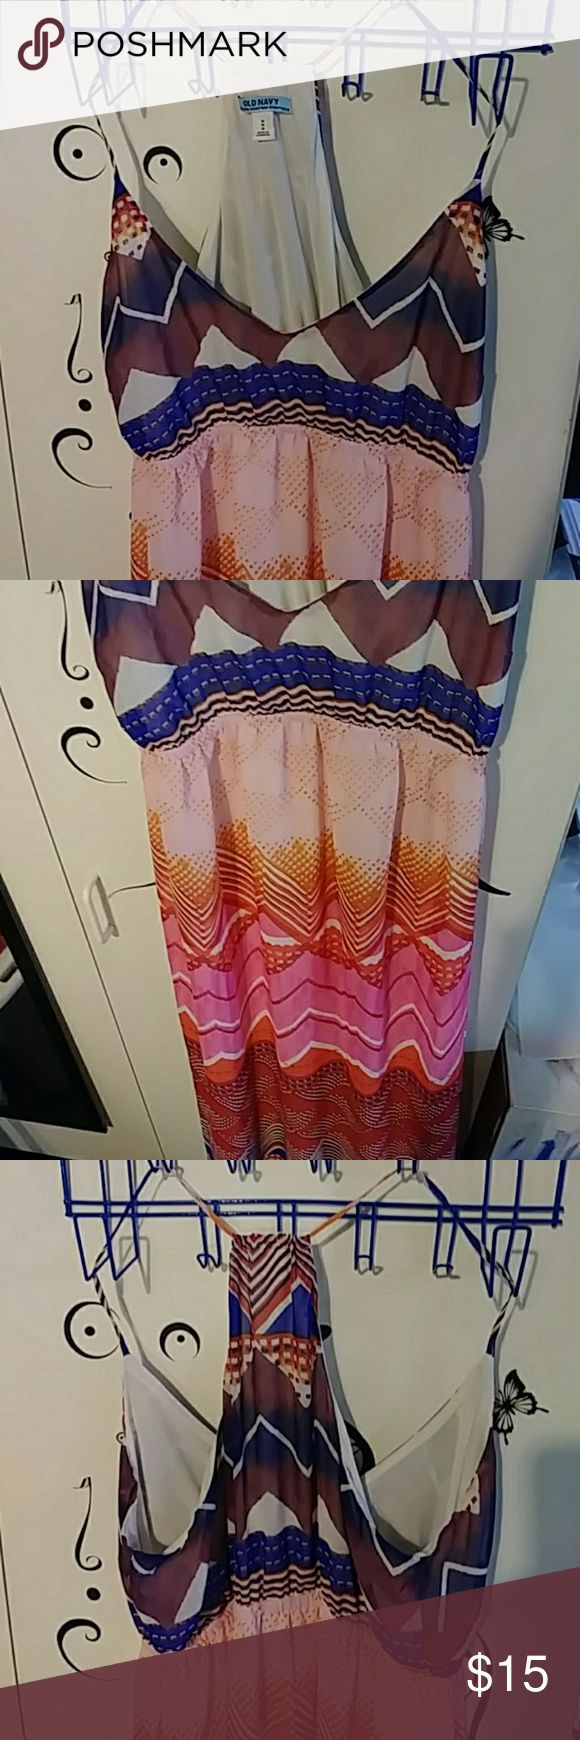 Old navy maternity dress Great condition. Cool for hot summer months Old Navy Dresses Maxi